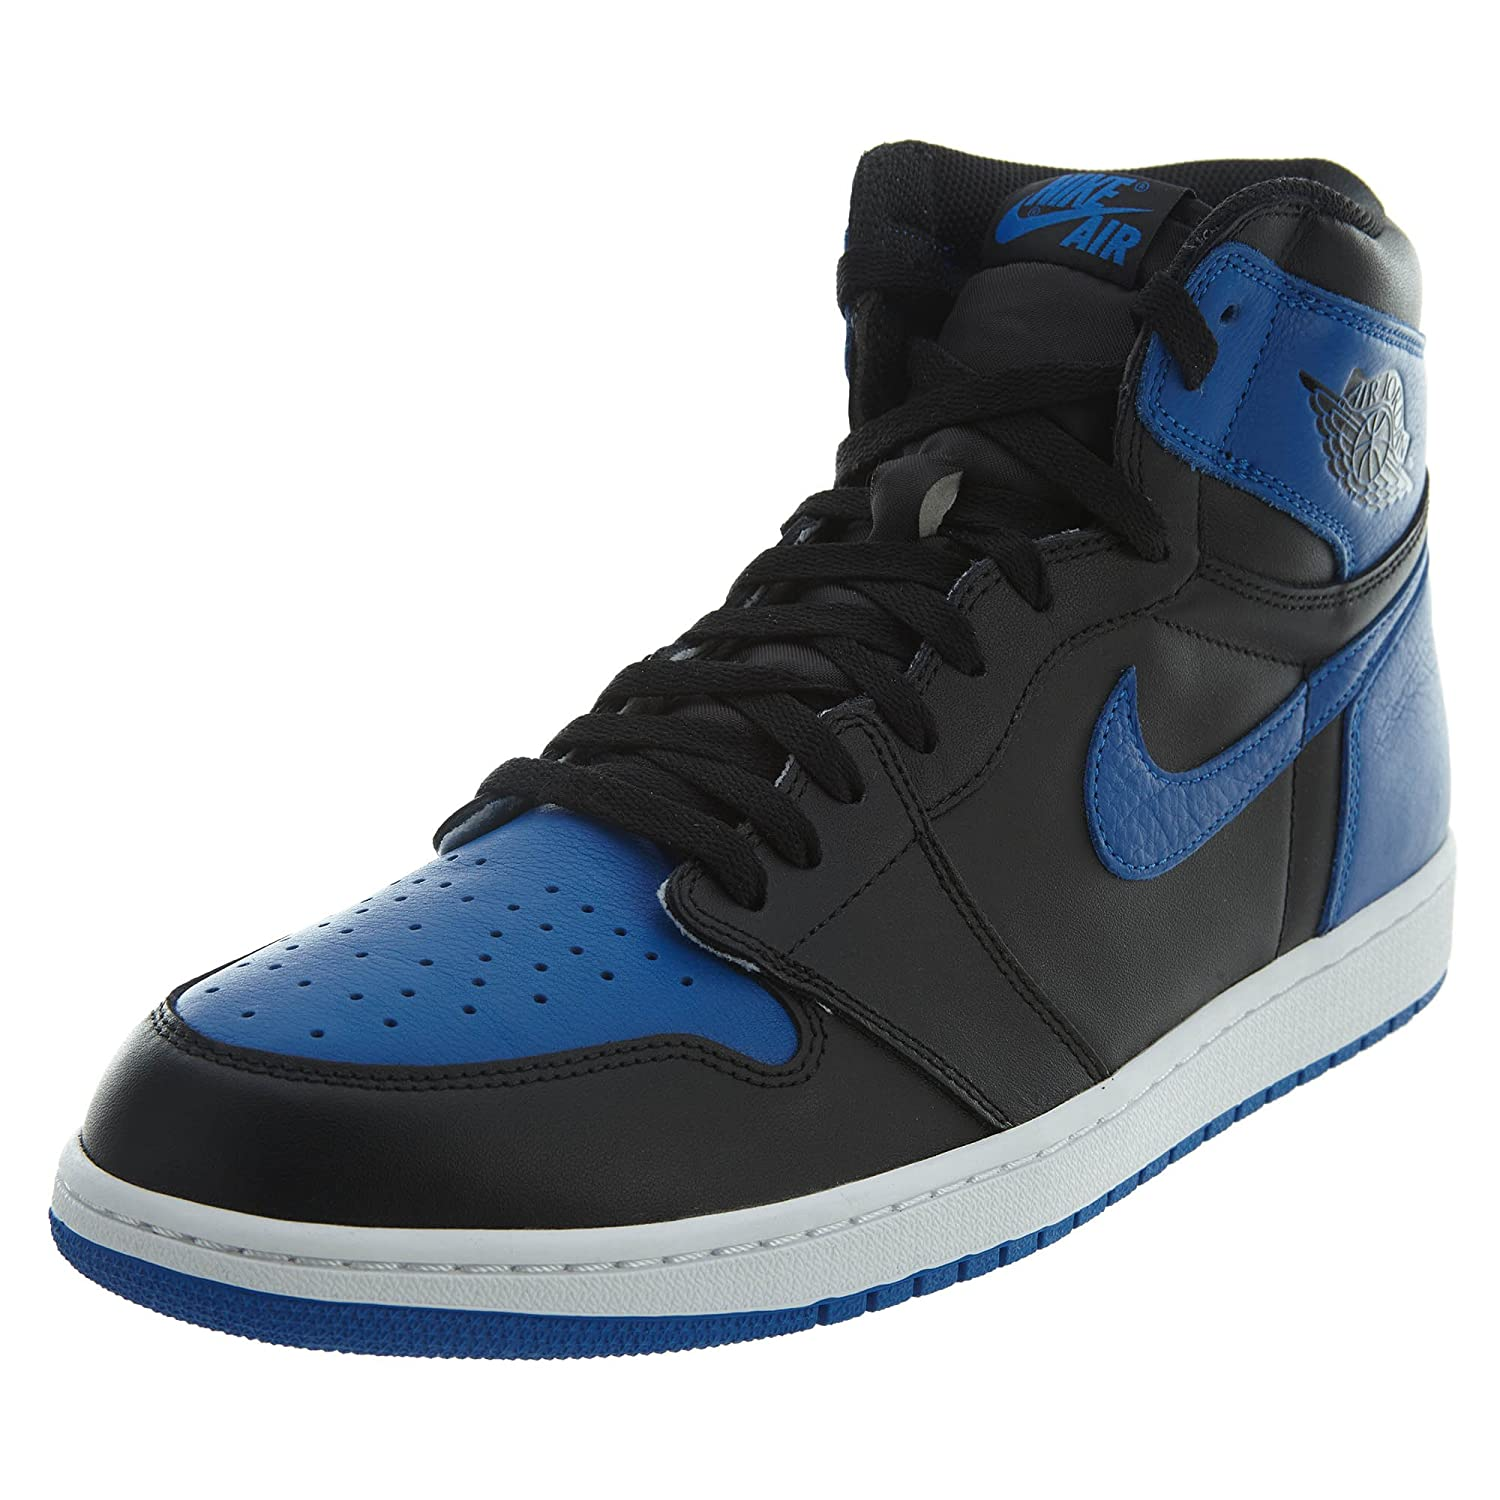 huge discount 79778 c1f19 Amazon.com  Nike Mens Air Jordan AJ 1 High Top Shoe, Royal BlueBlackWhite,  9.5 D(M) US  Basketball